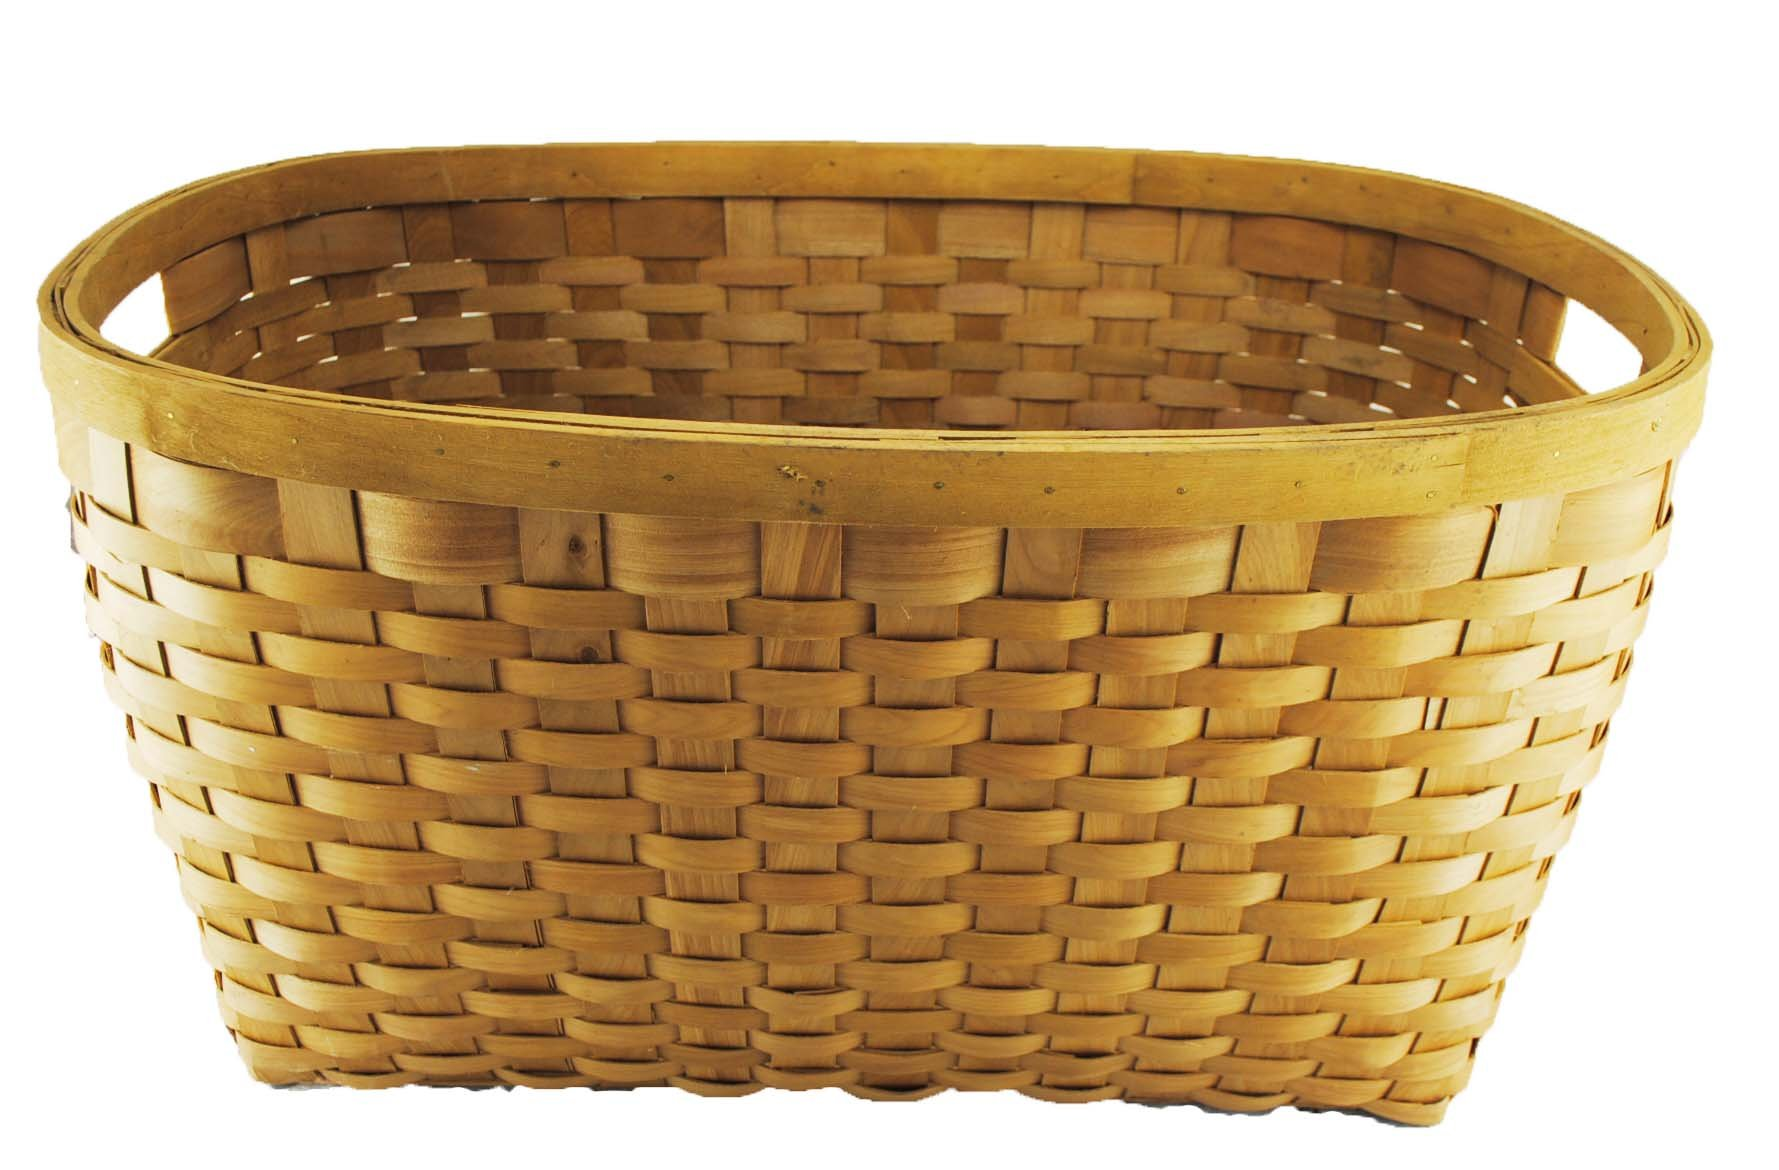 TOPOT Jambo Set of 3 Wood chip Laundry Storage Baskets in Honey Brown Color by TopherTrading (Image #2)